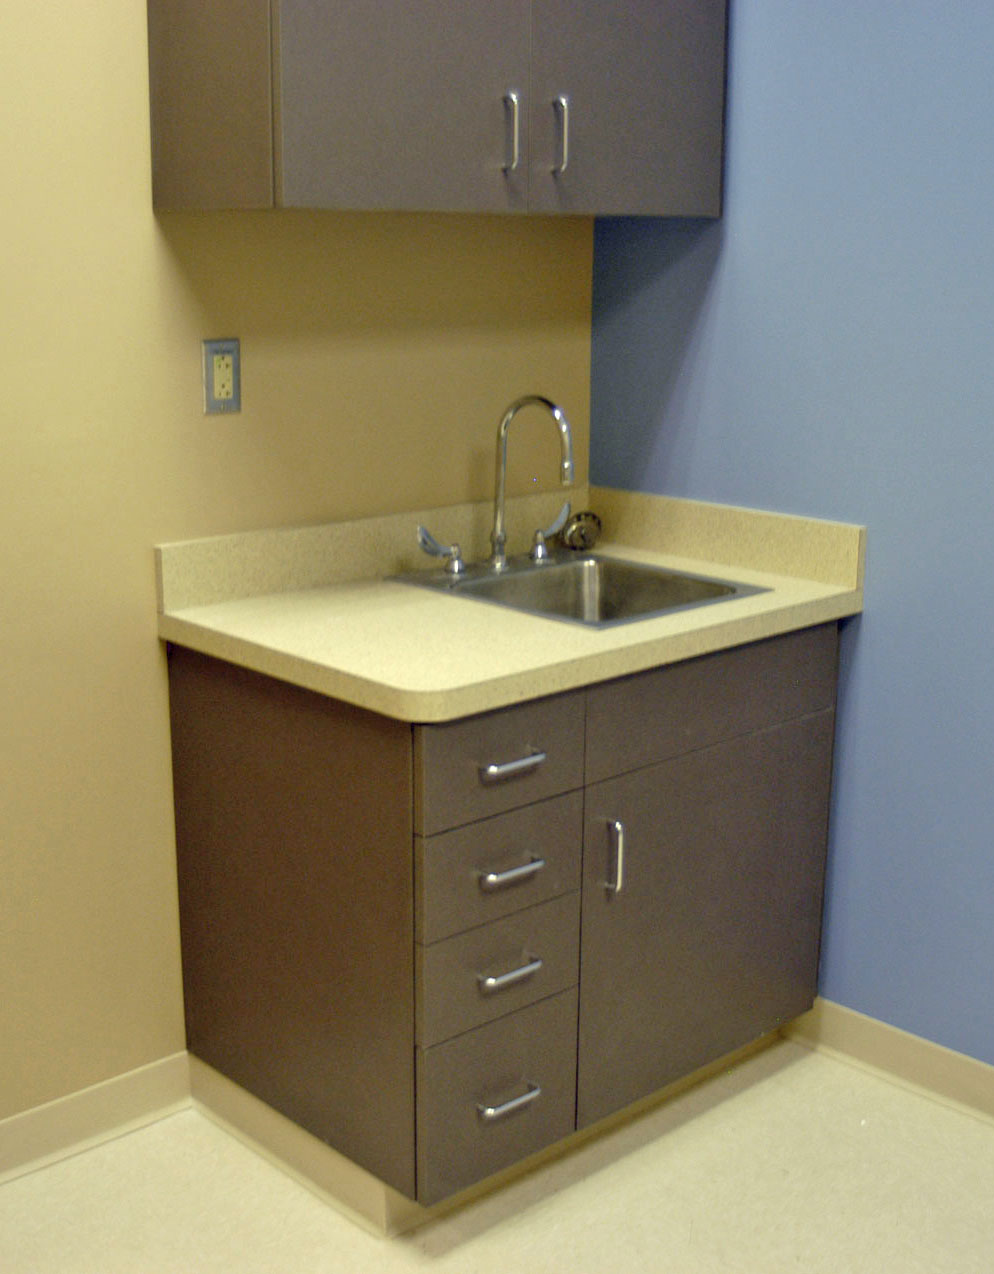 Peachy Gt Brothers Inc Direct Manufacturer Of Casework Cabinetry Interior Design Ideas Gentotthenellocom